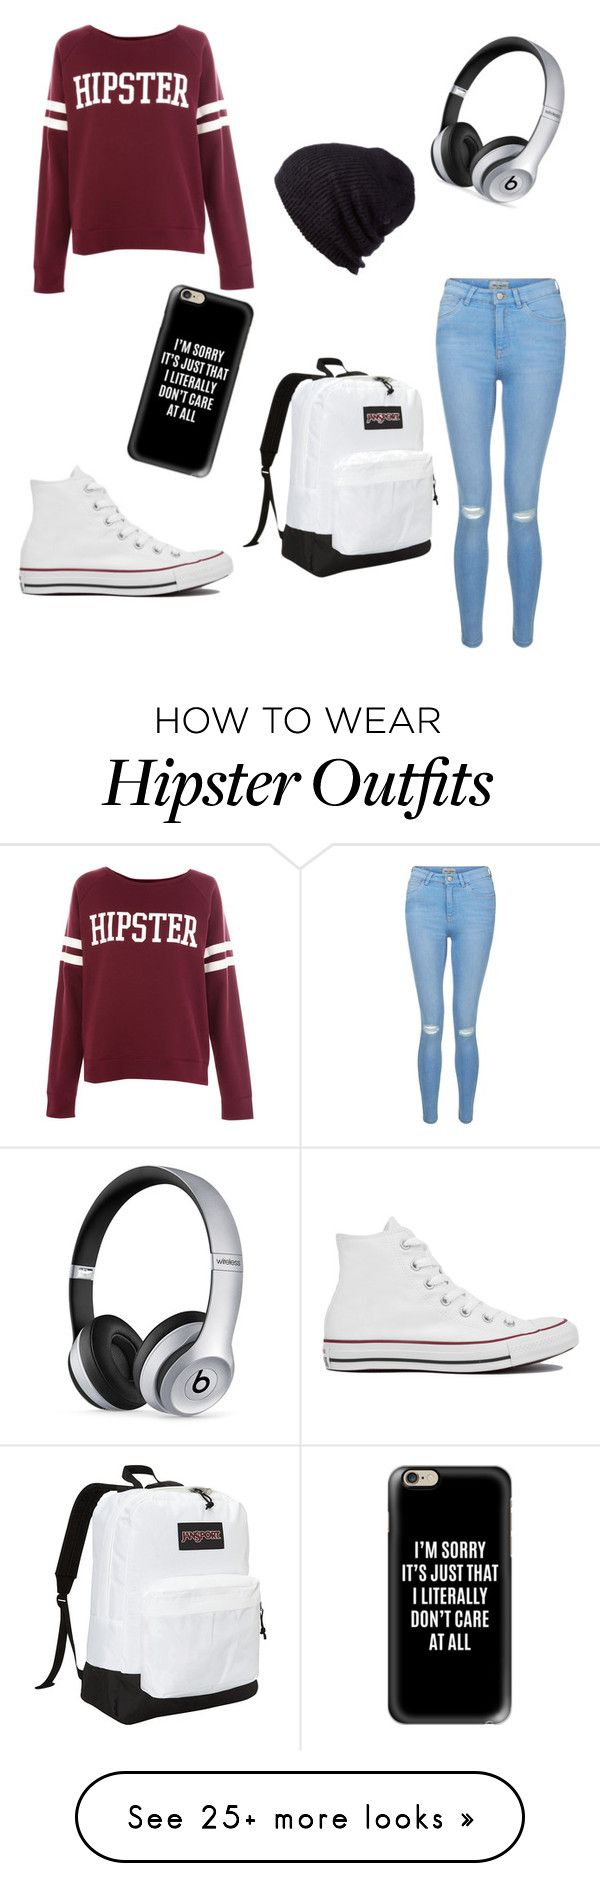 """""""Hipster outfit"""" by ashtian22 on Polyvore featuring Pull&Bear, JanSport, Beats by Dr. Dre, Coal, New Look, Converse and Casetify"""